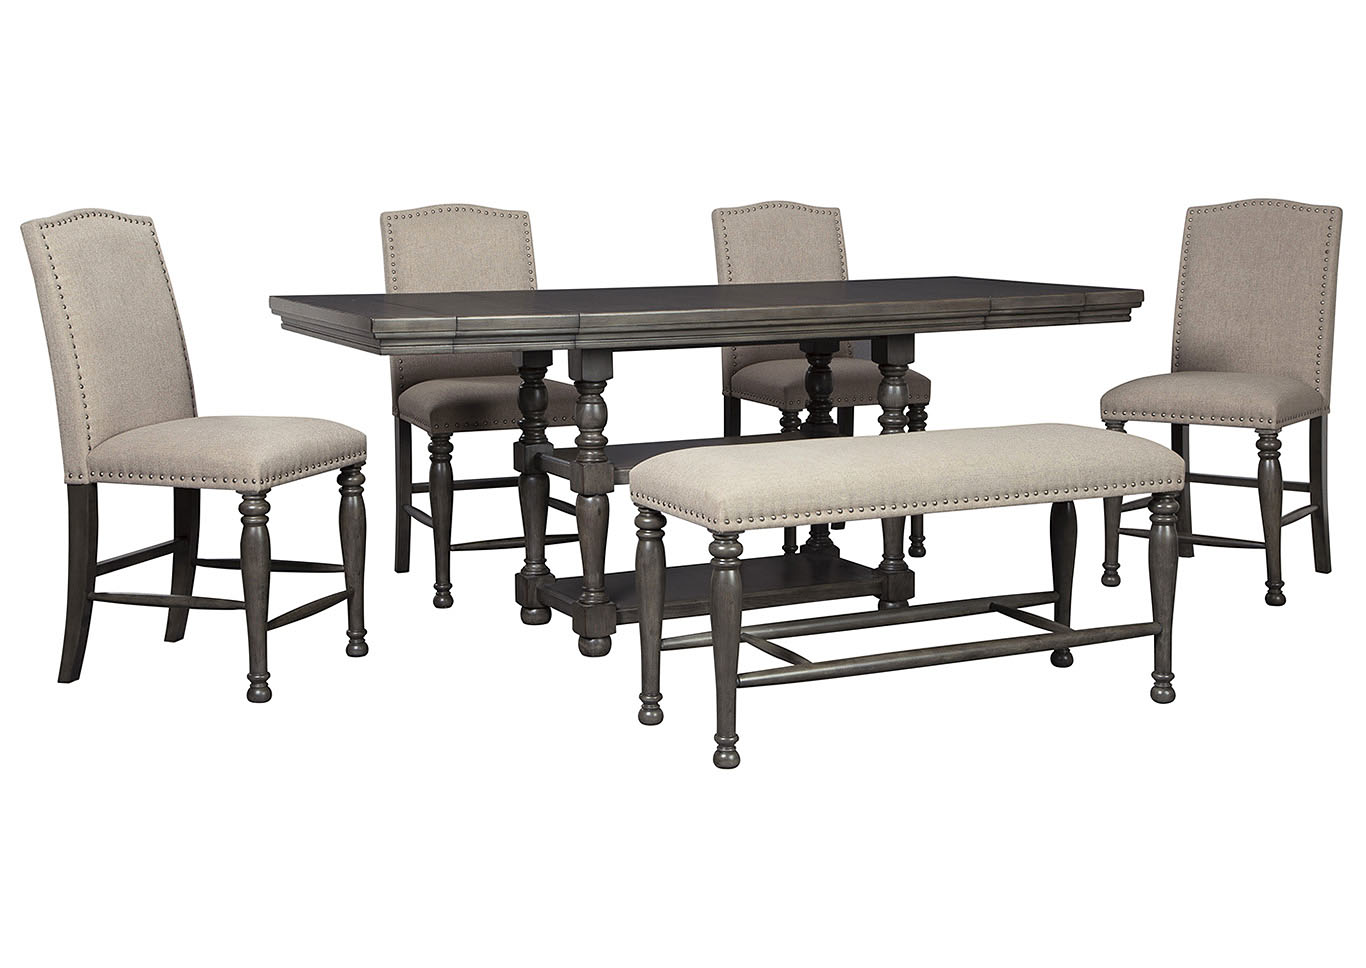 Audberry Dining Set w/4 Bar Stools & Bench,Signature Design By Ashley